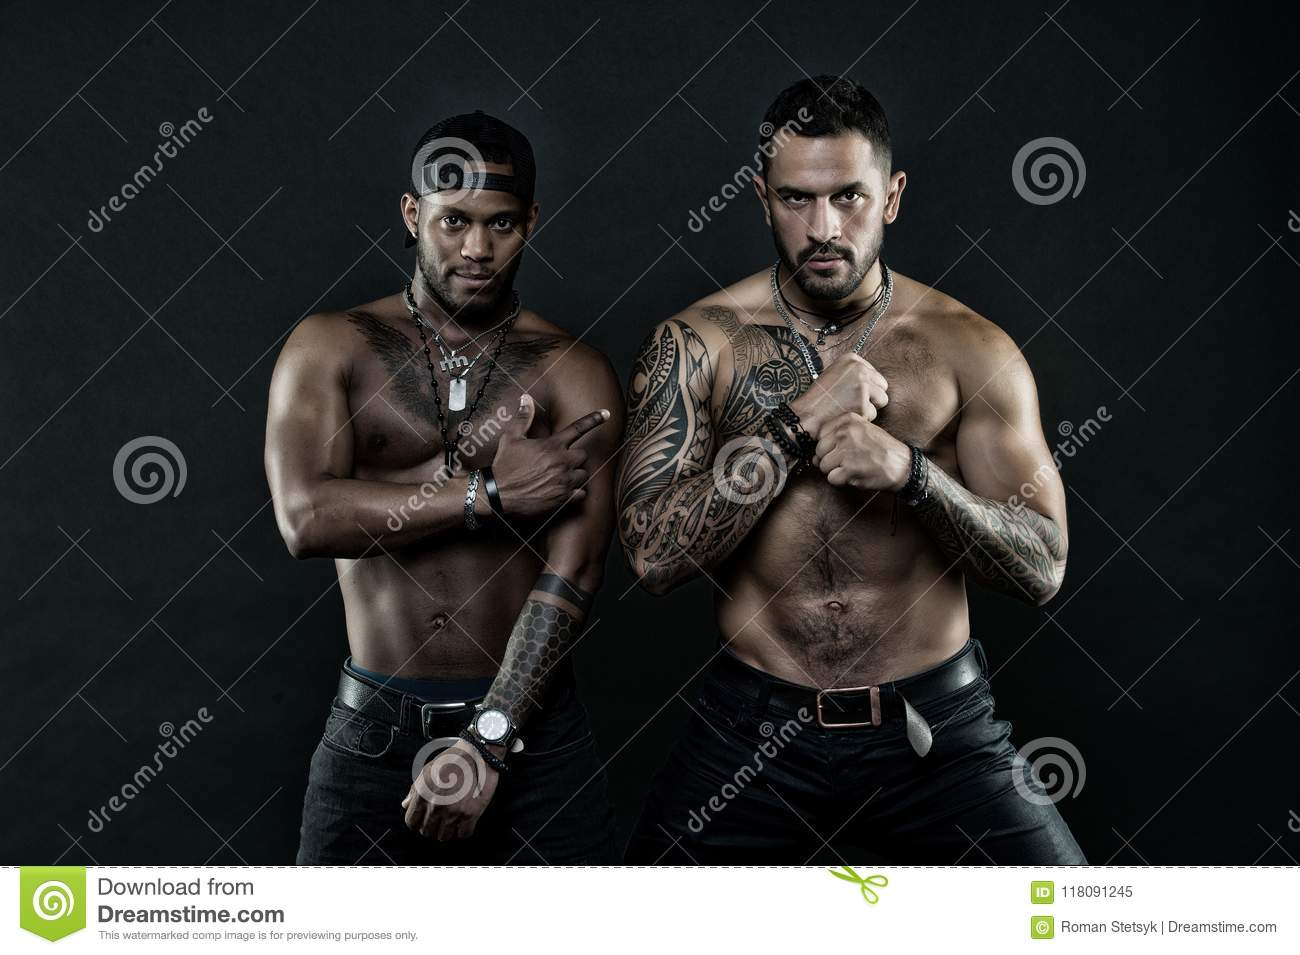 Athletes on confident faces with nude muscular chests and biceps. Machos with muscular tattooed torsos look attractive